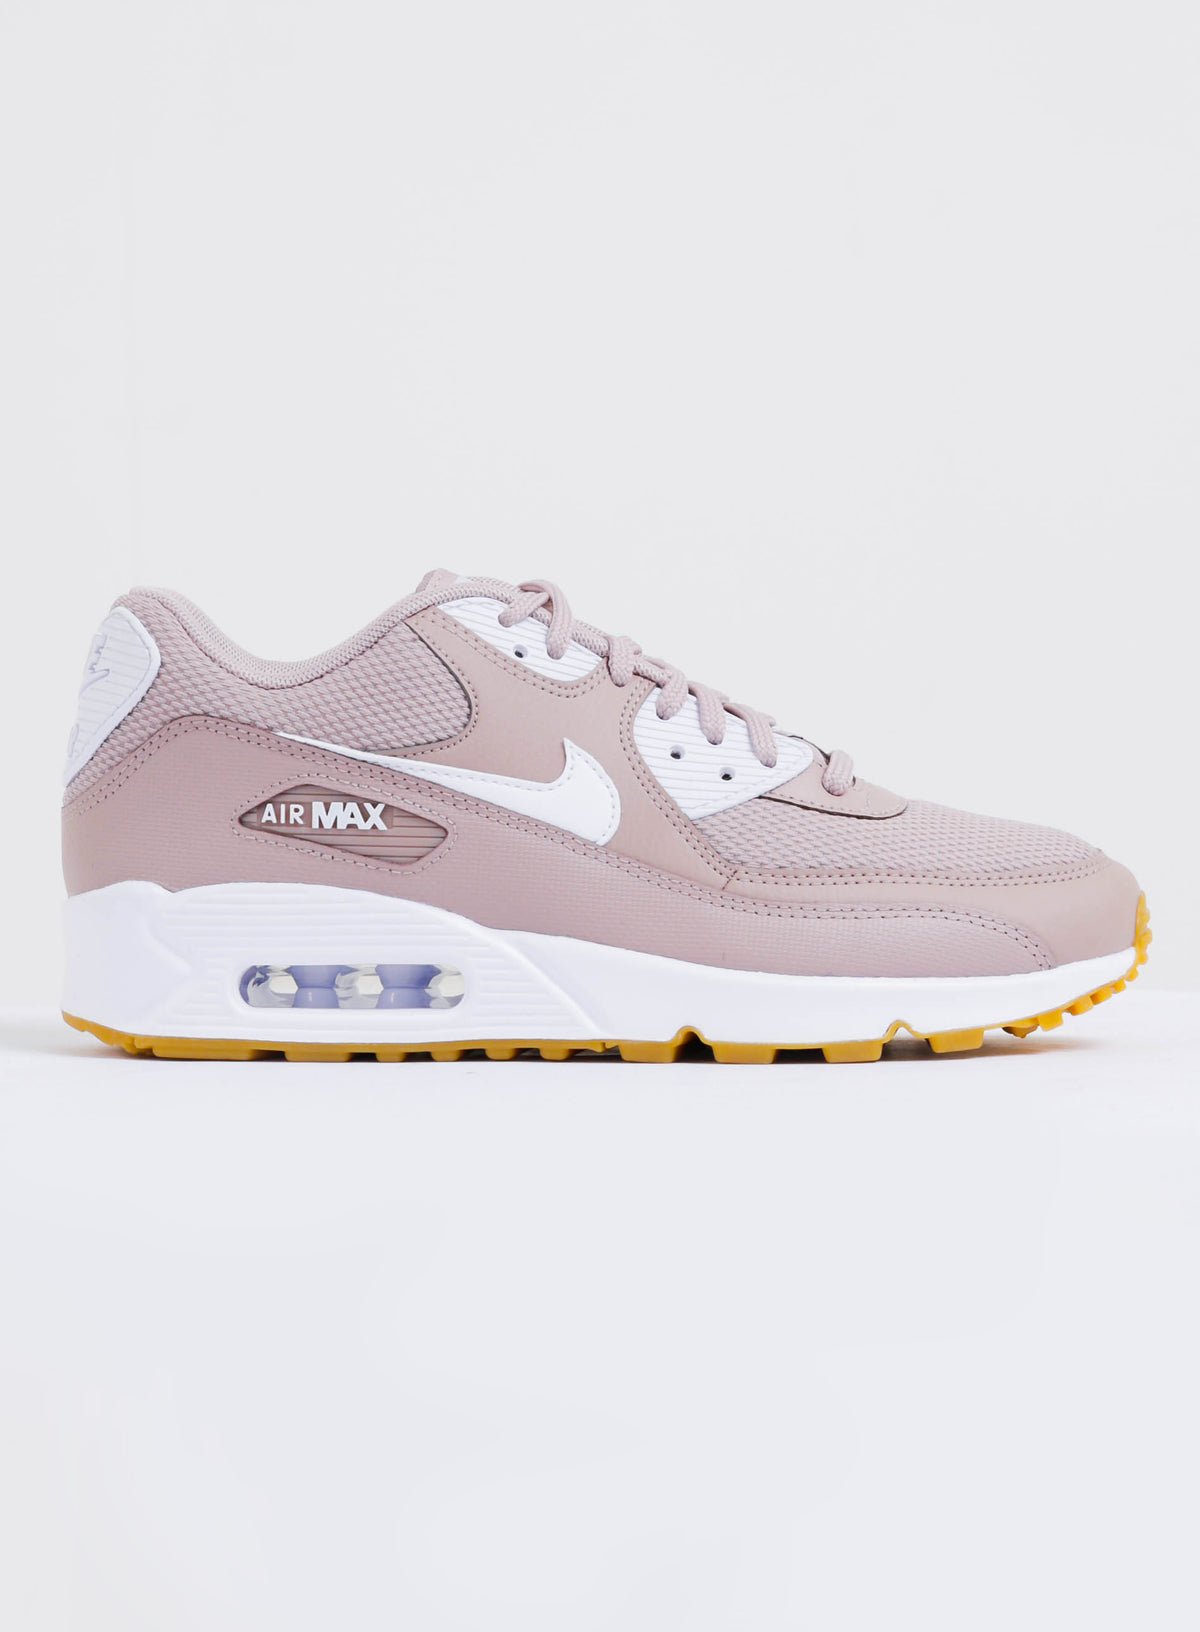 Womens Air Max 90 Sneakers in Taupe & White